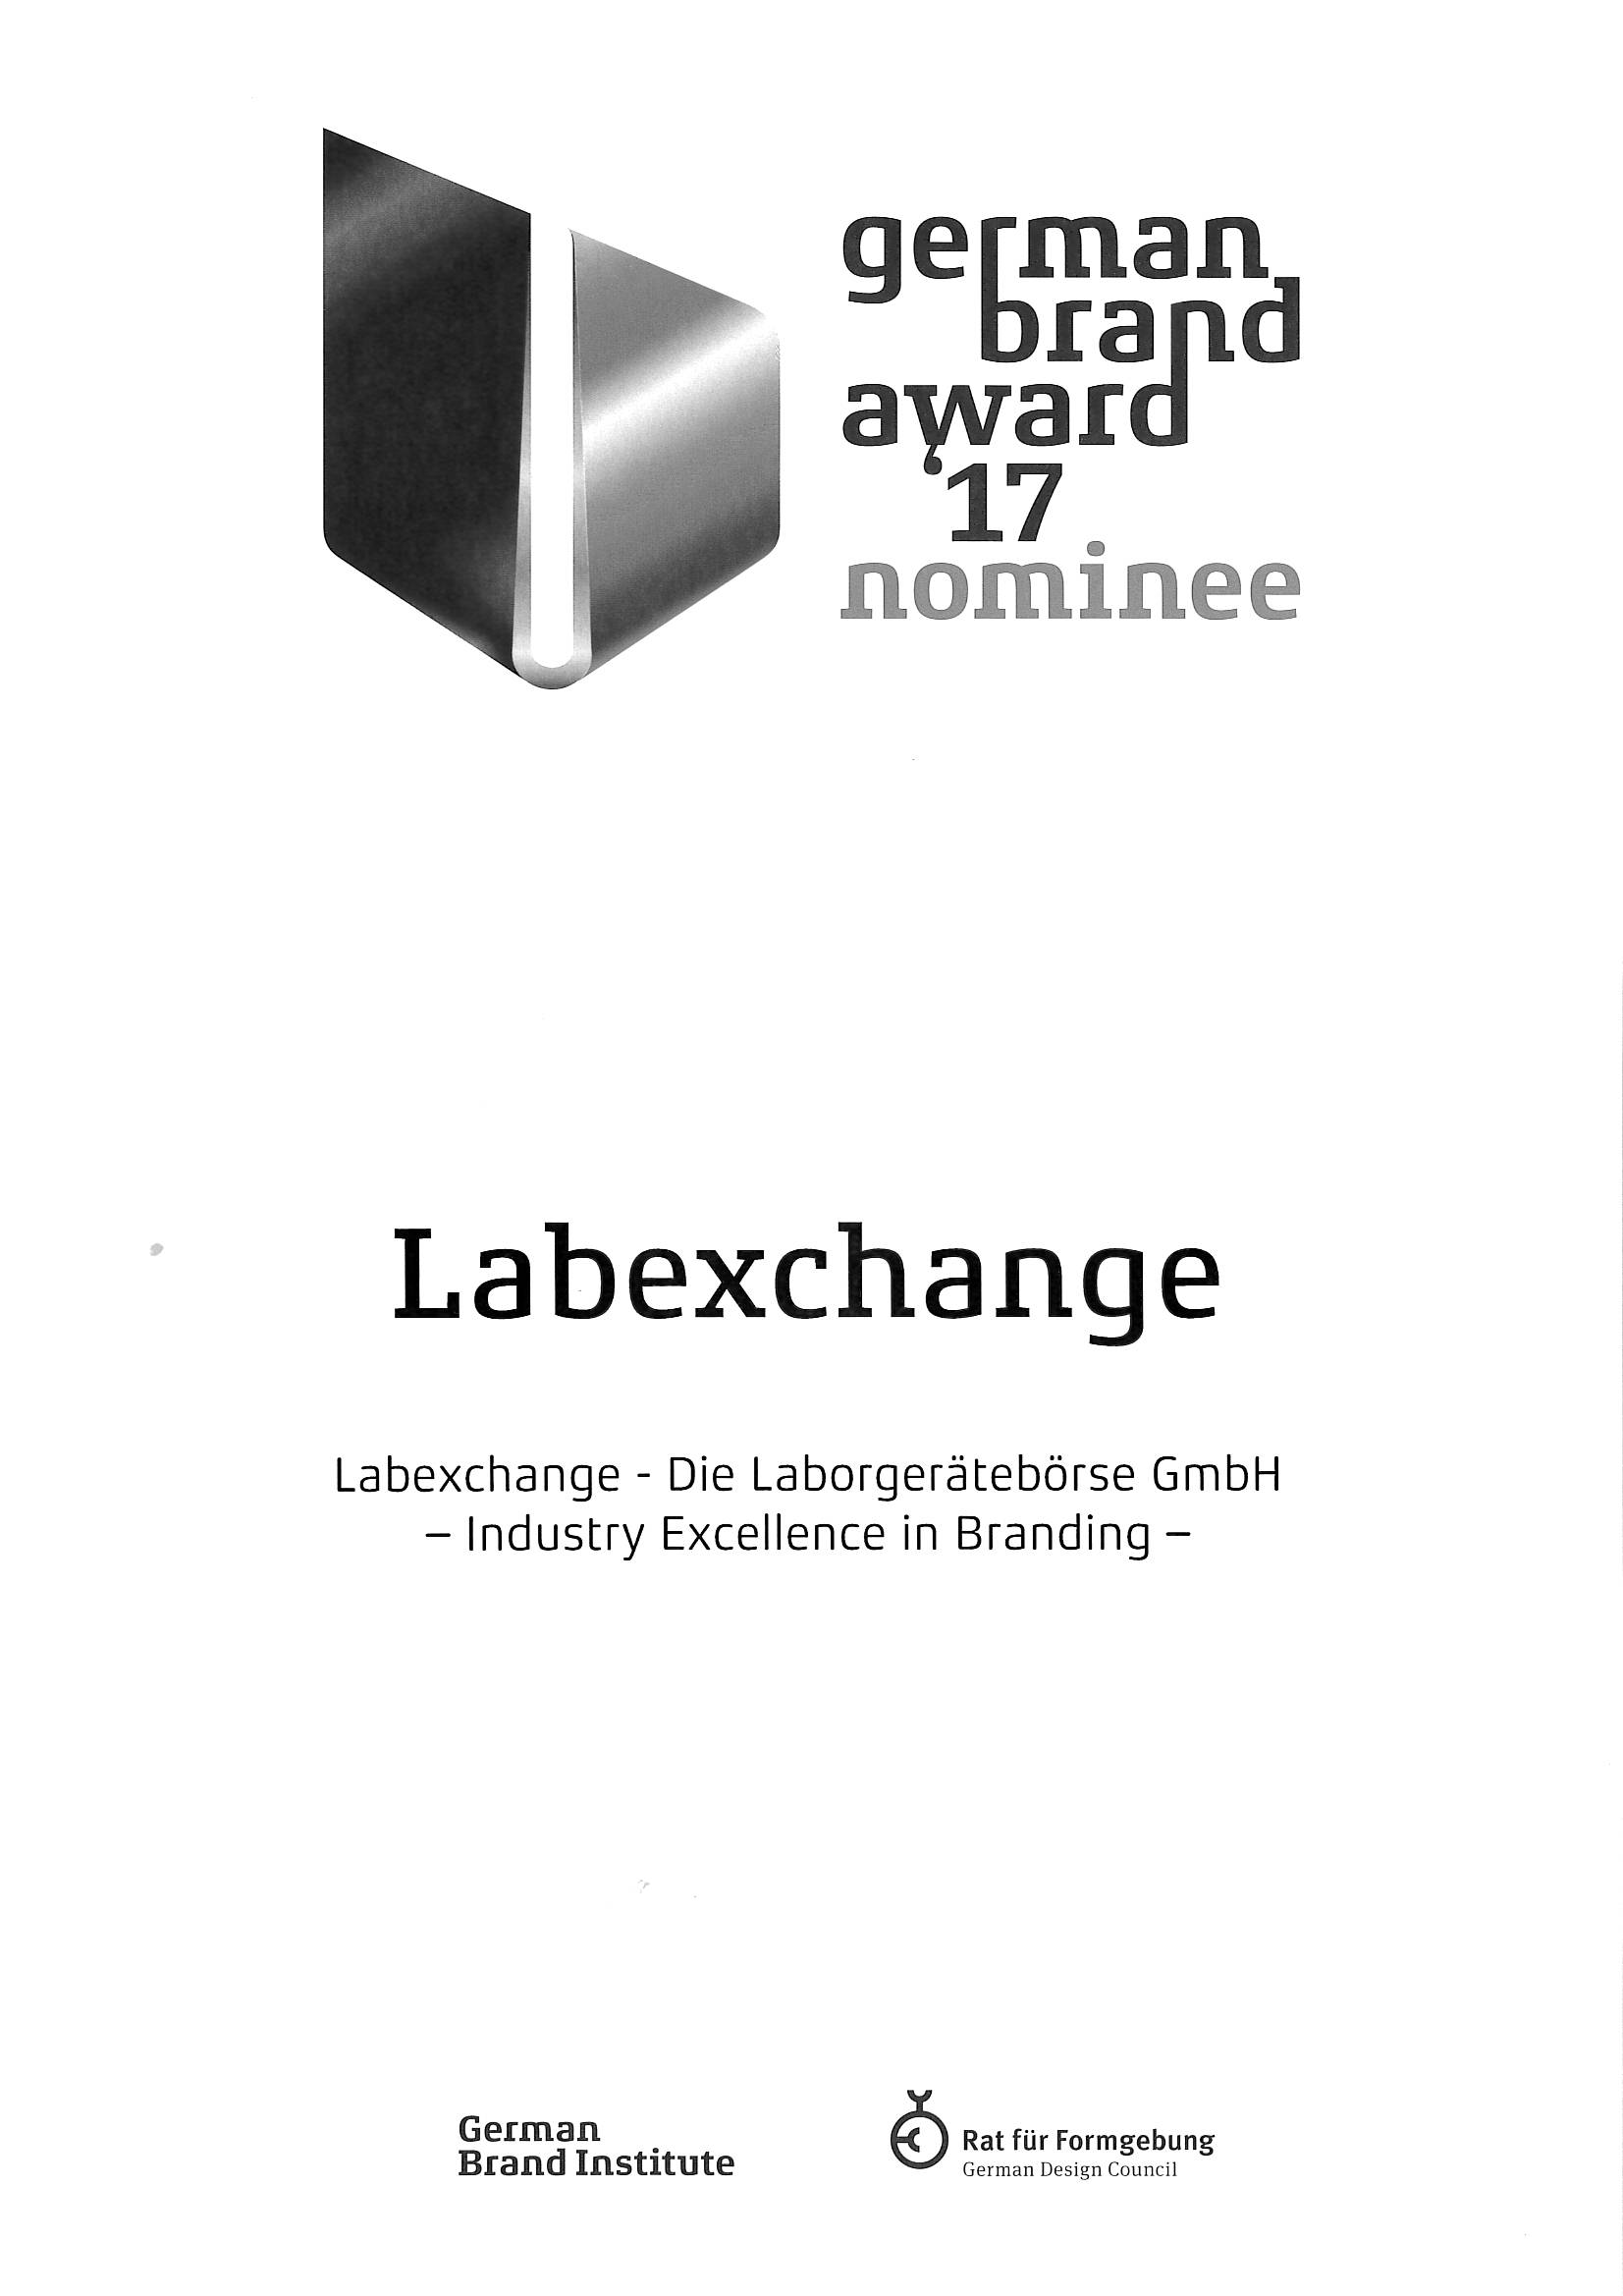 Labexchange is nominated for the German Brand Award